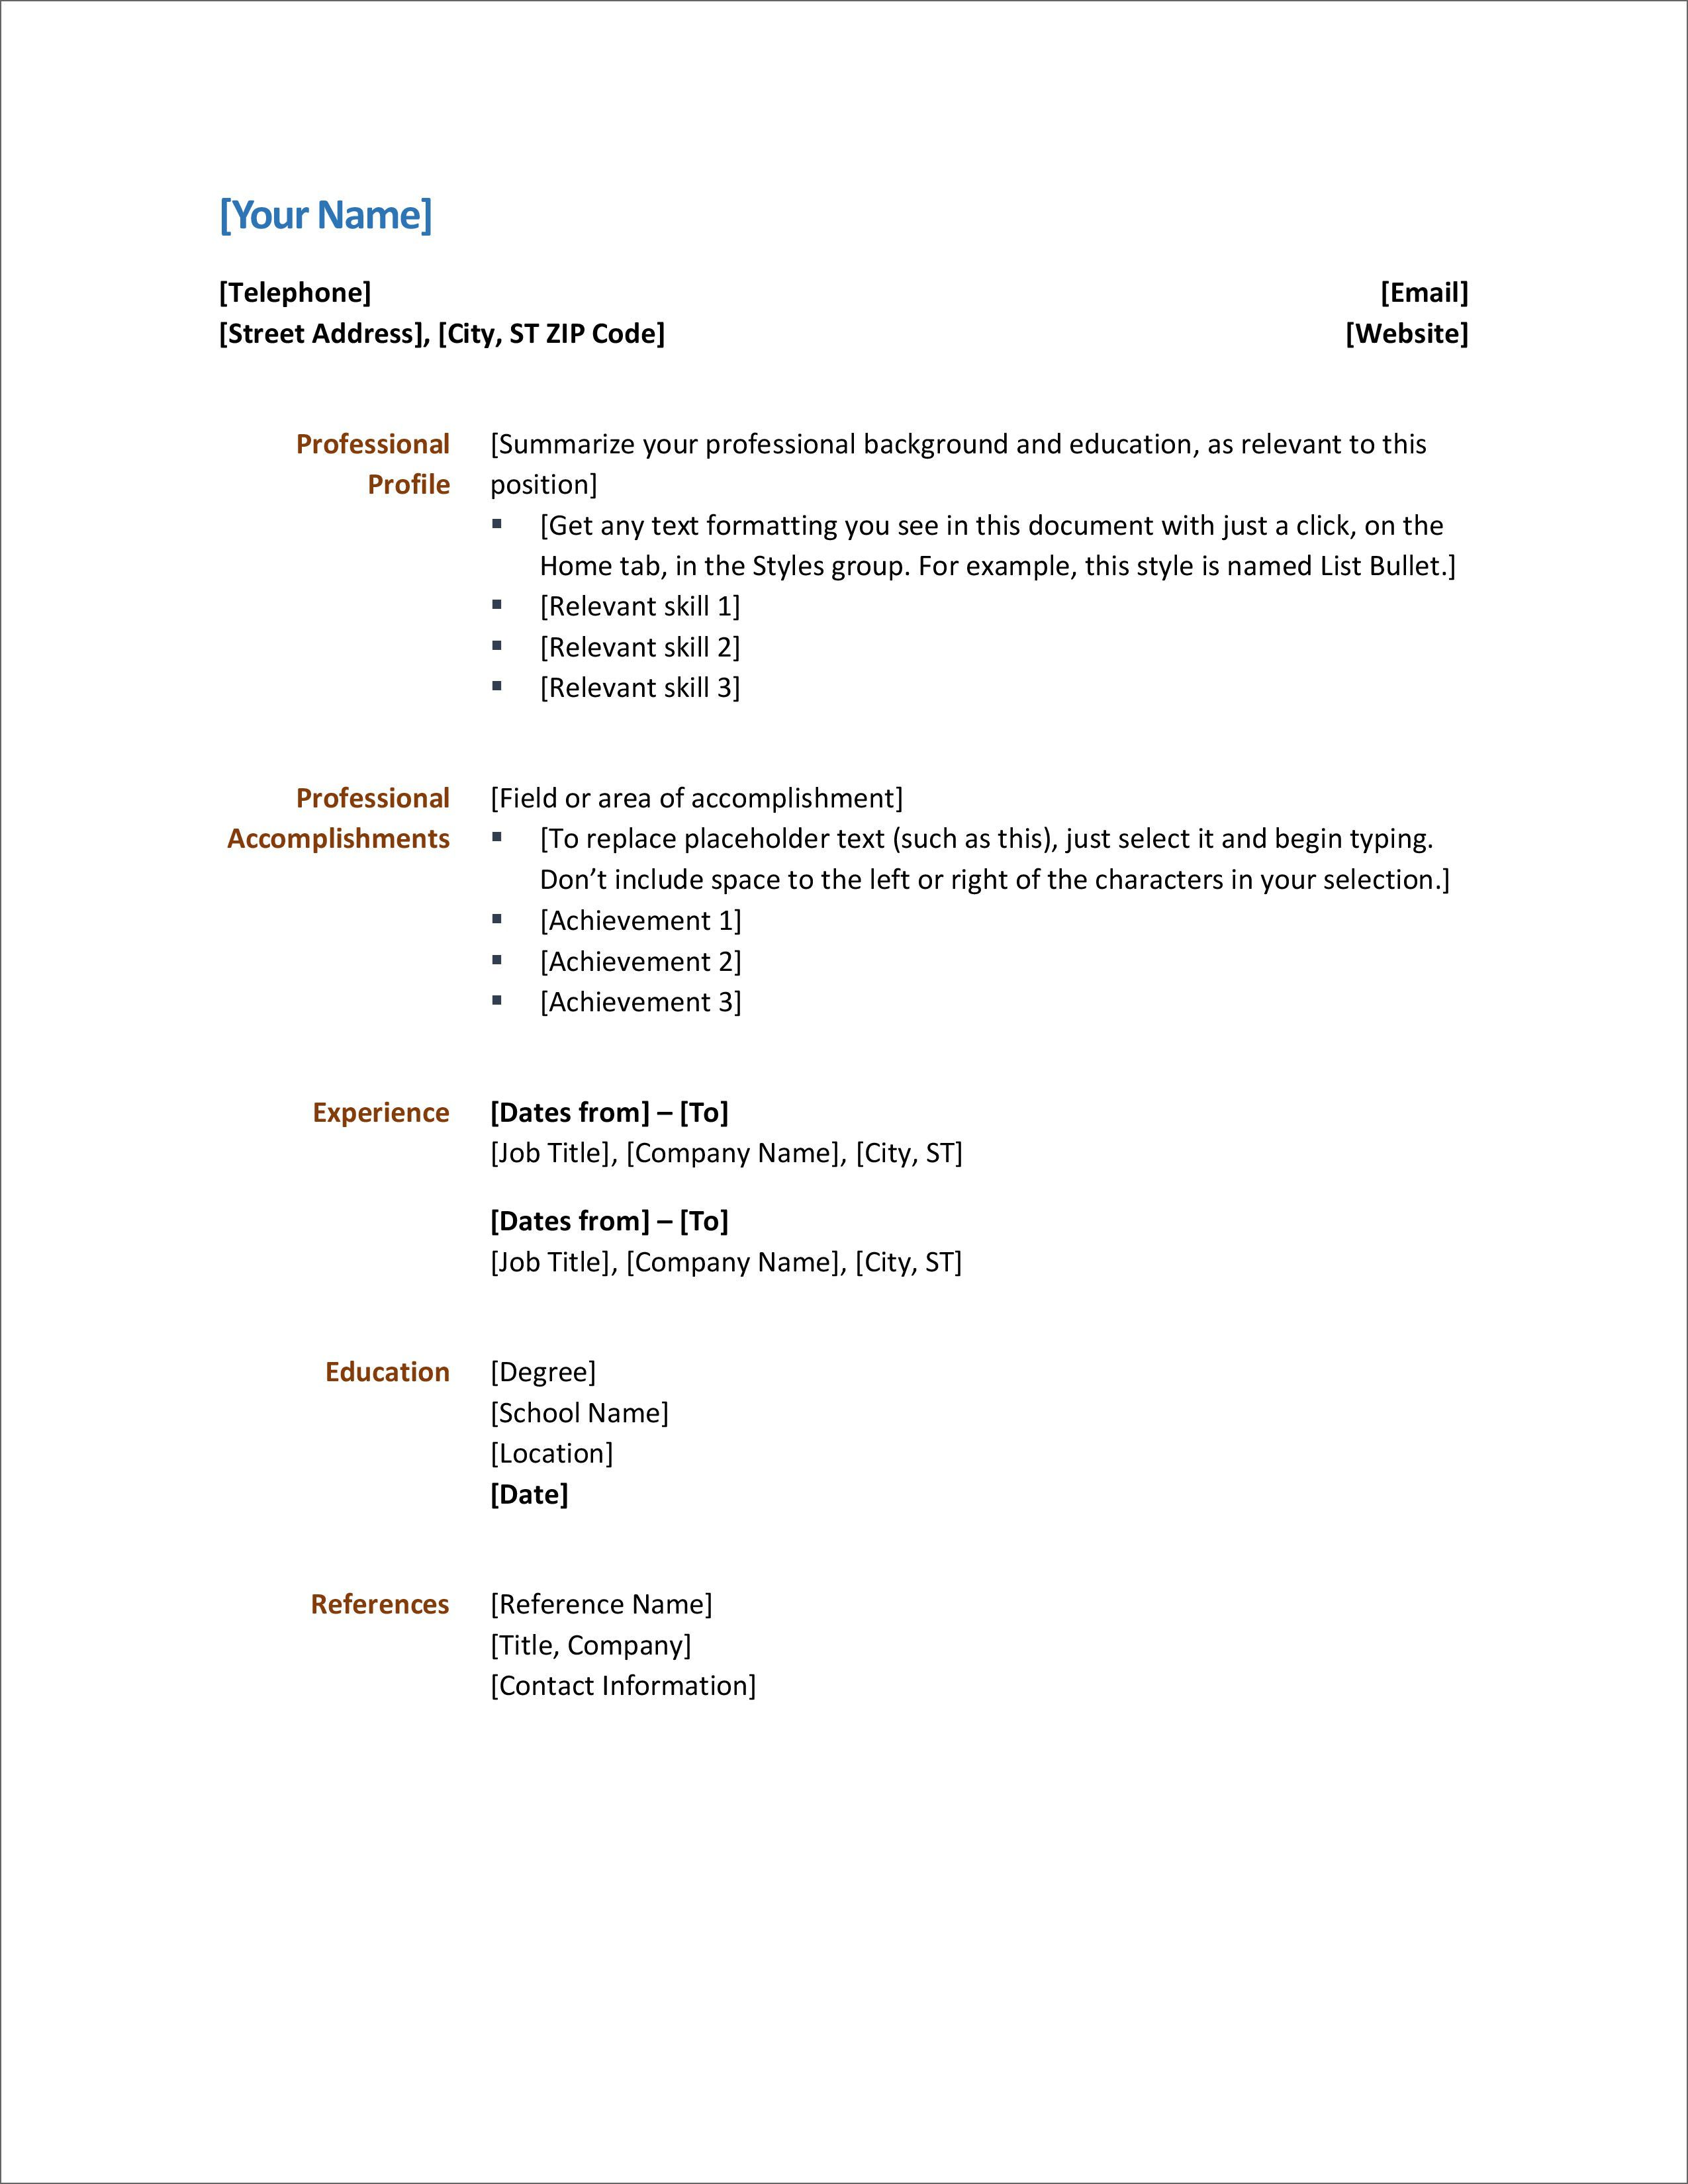 003 Amazing Microsoft Office Template Resume Picture  Word 2007 M Cv Free DownloadFull